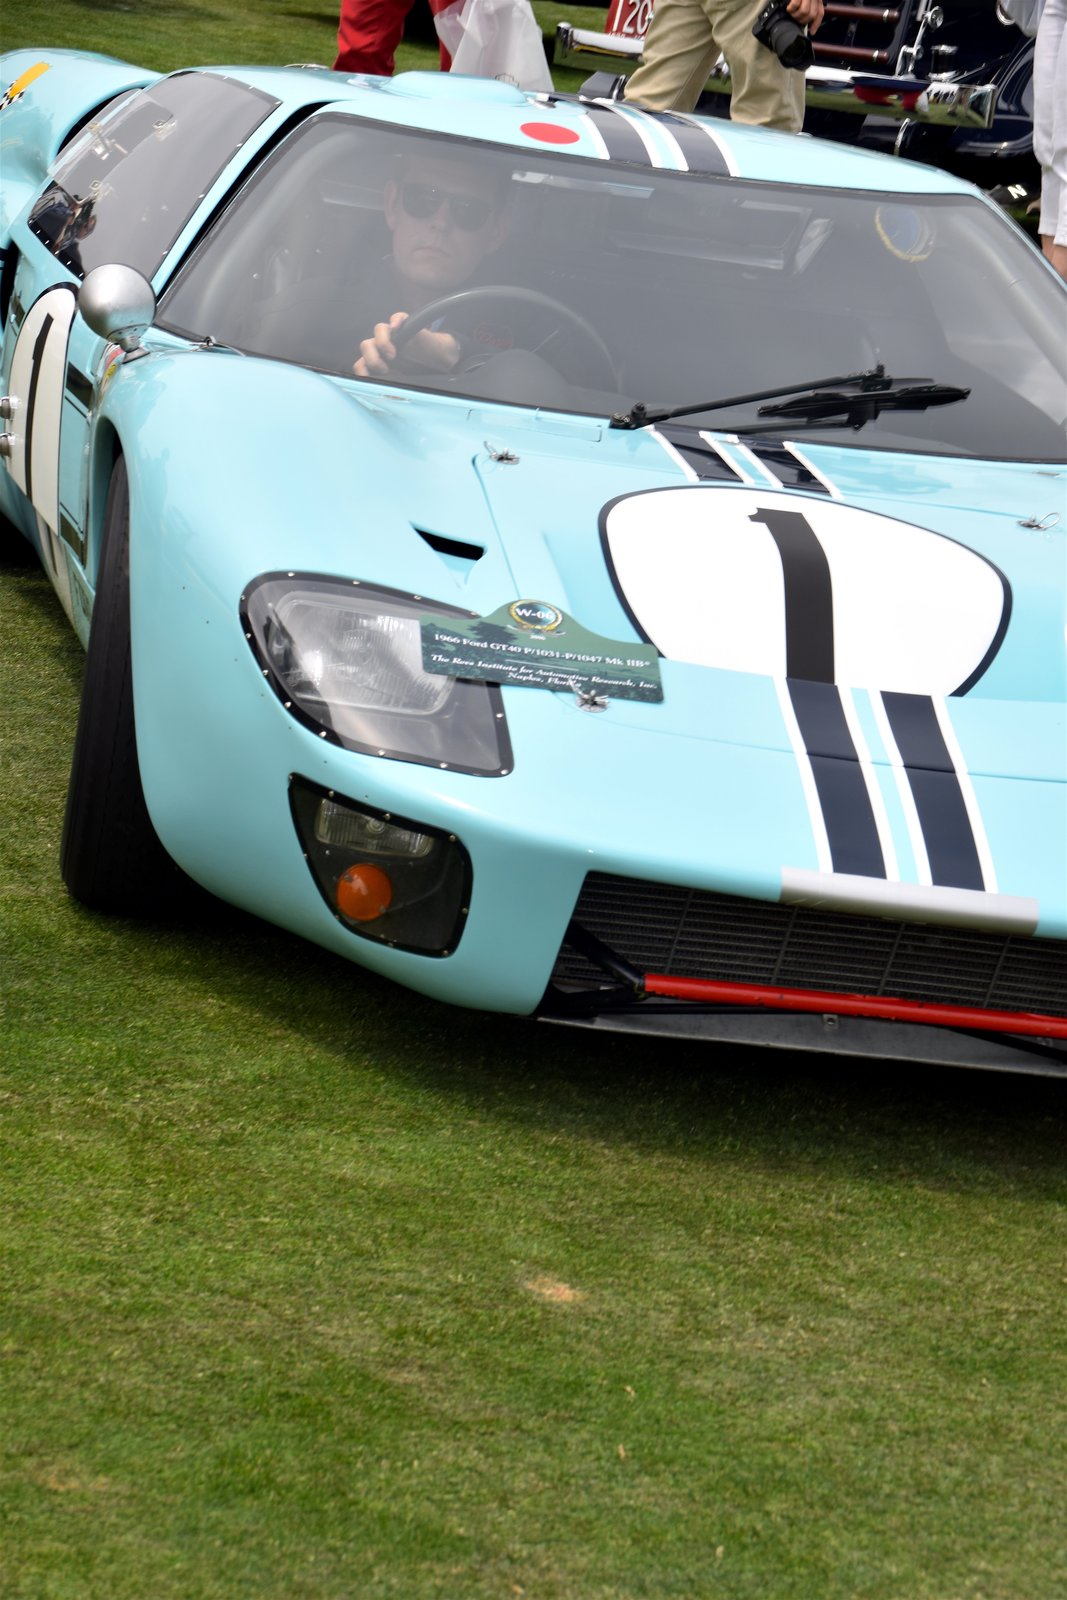 Brought to the show from the Revs Institute for Automotive Research, Inc. in Naples, Florida, this 1966 Ford GT40 raced for the first time at the 12 Hours of Sebring race in 1966. After enduring several eventful races, it concluded its career after racing at Montlhéry. It's been carefully preserved ever since.  Photo 3 of 10 in A Day at the Pebble Beach Concours d'Elegance Car Show